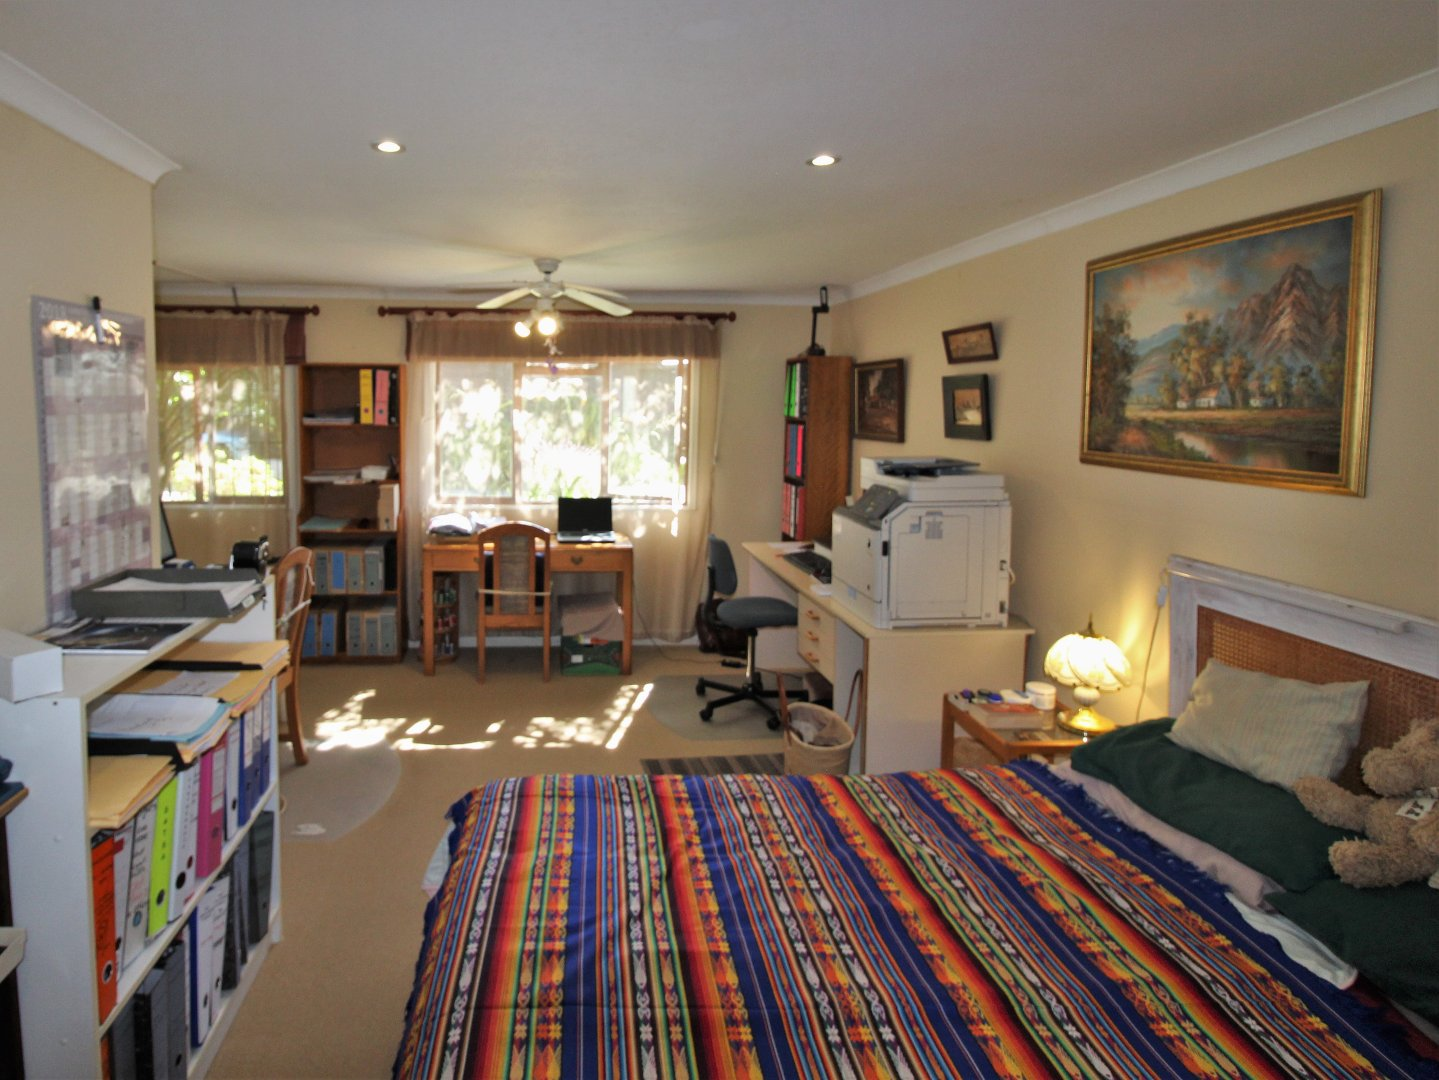 Harkerville A H property for sale. Ref No: 13603569. Picture no 10